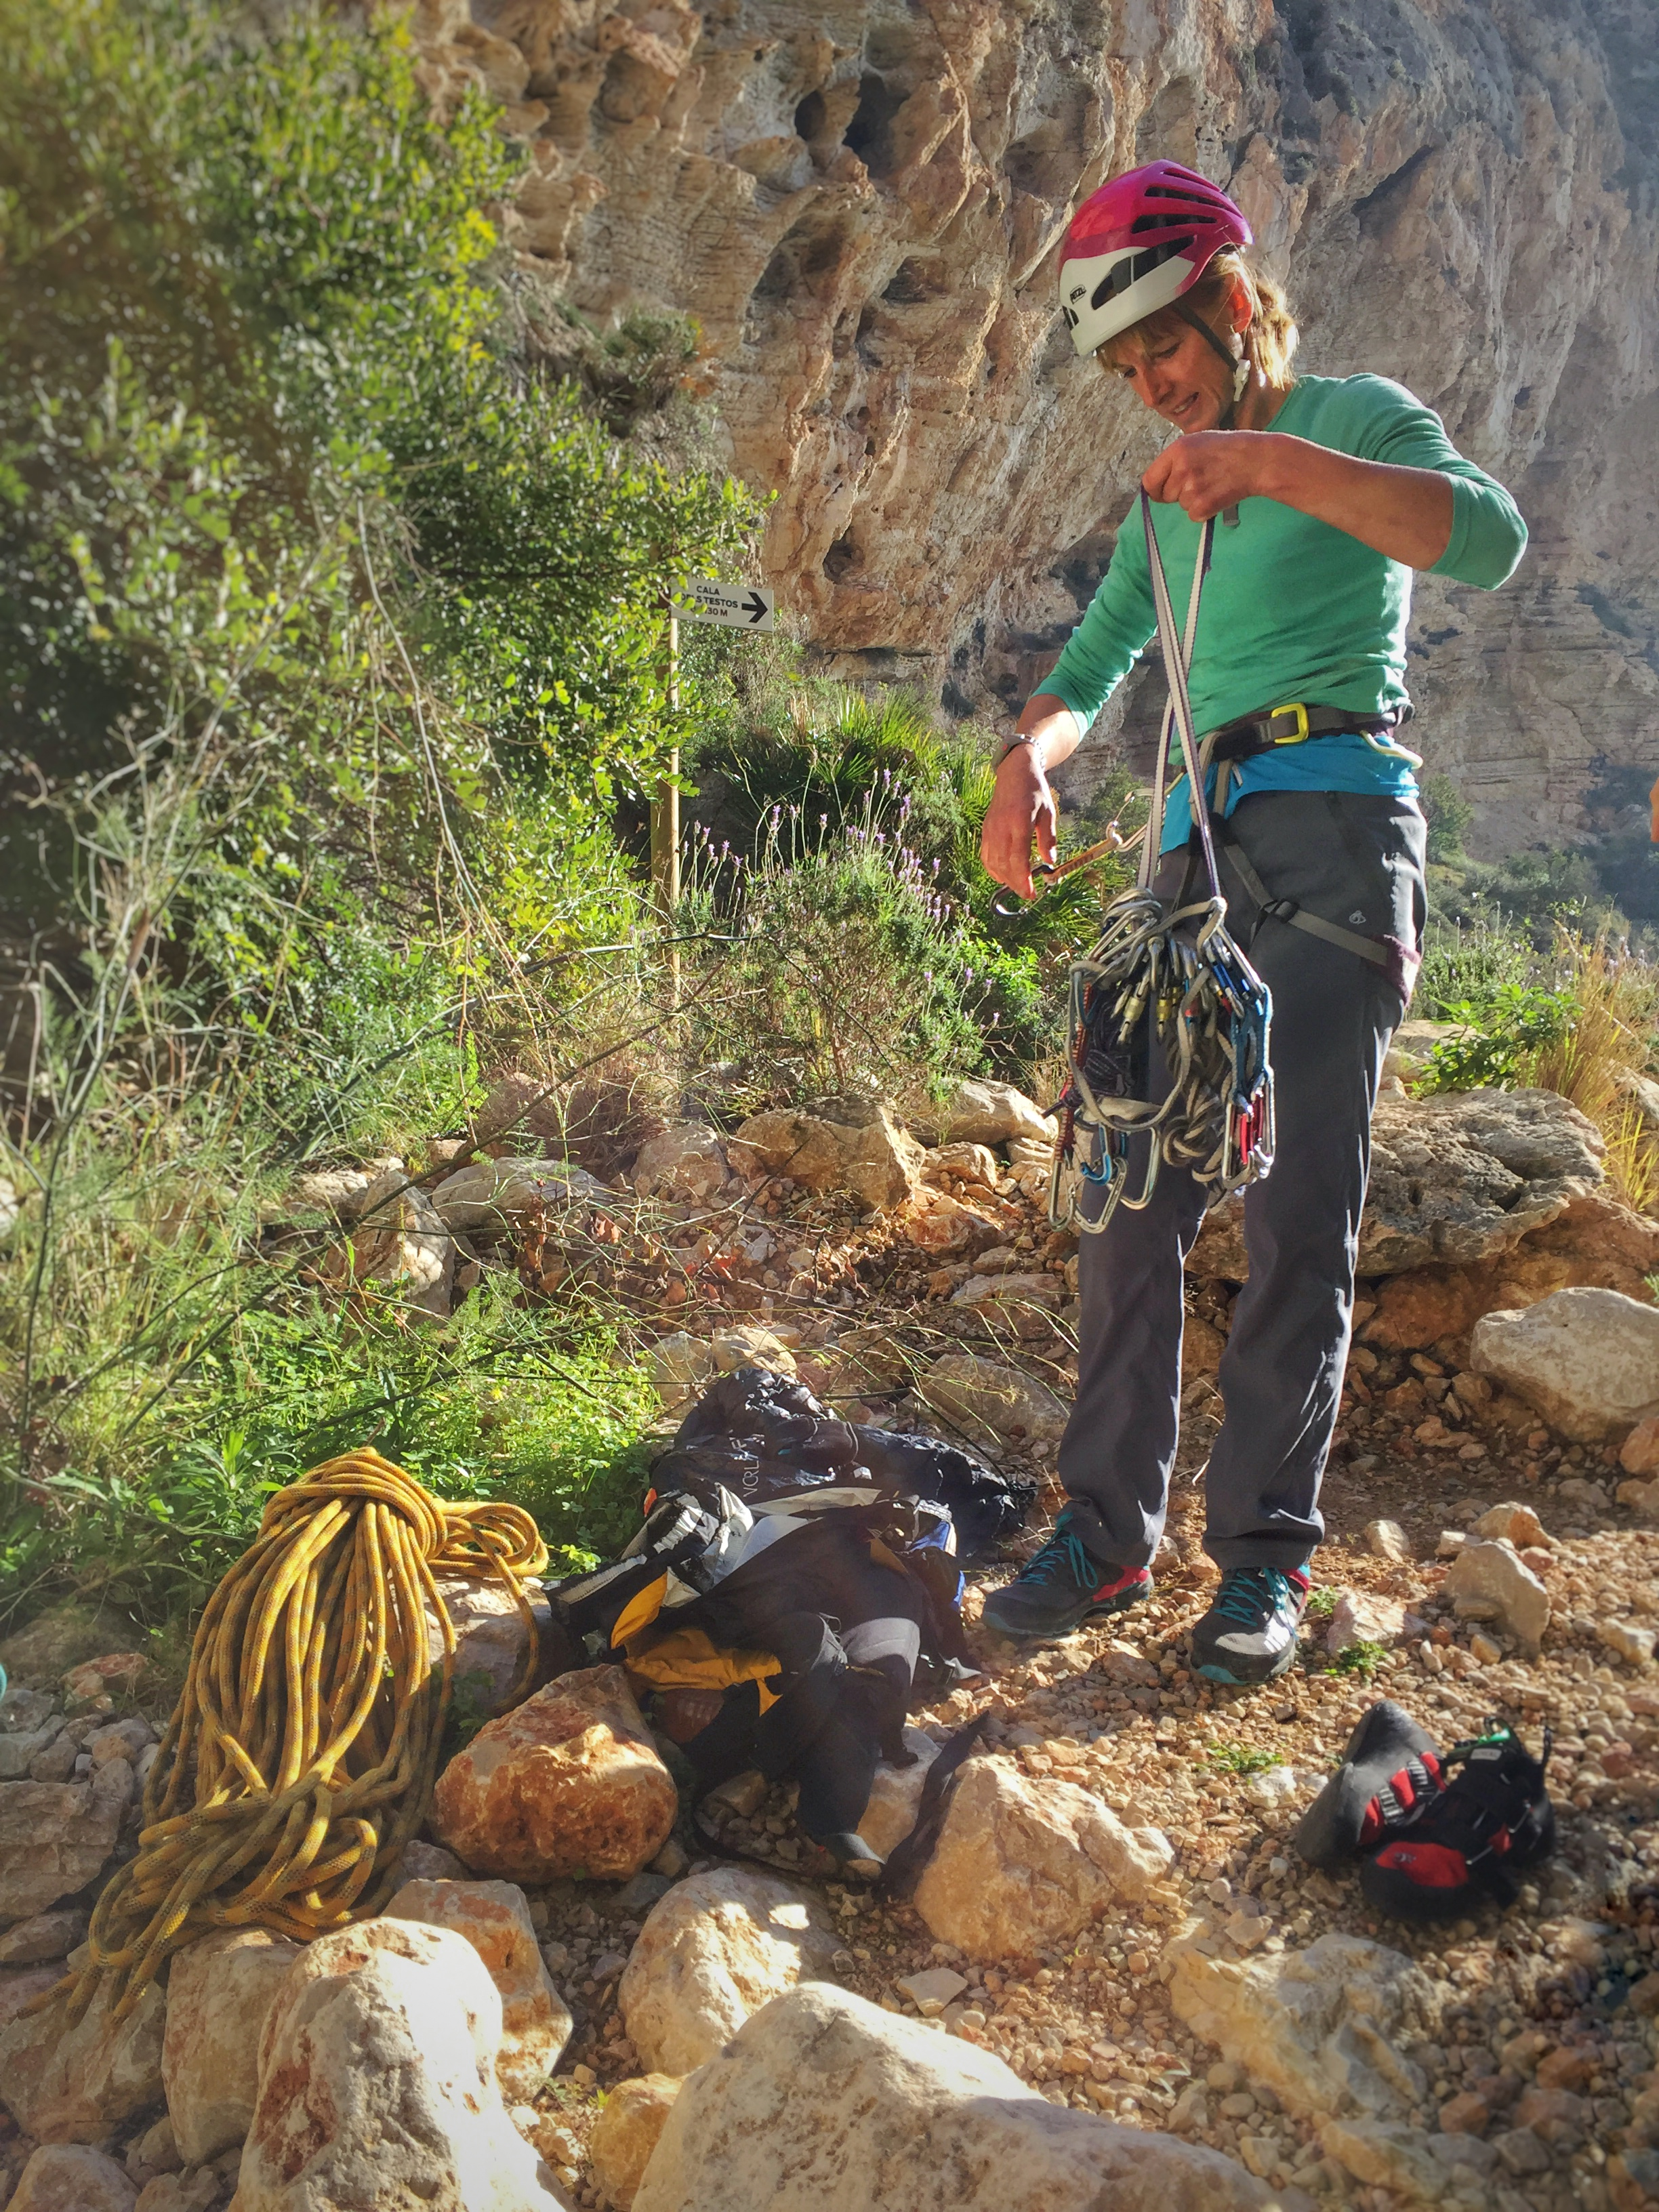 Kate gearing up at the base of multipitch sea cliff climb Sonjanikka at Morro Falqui, Costa Blanca